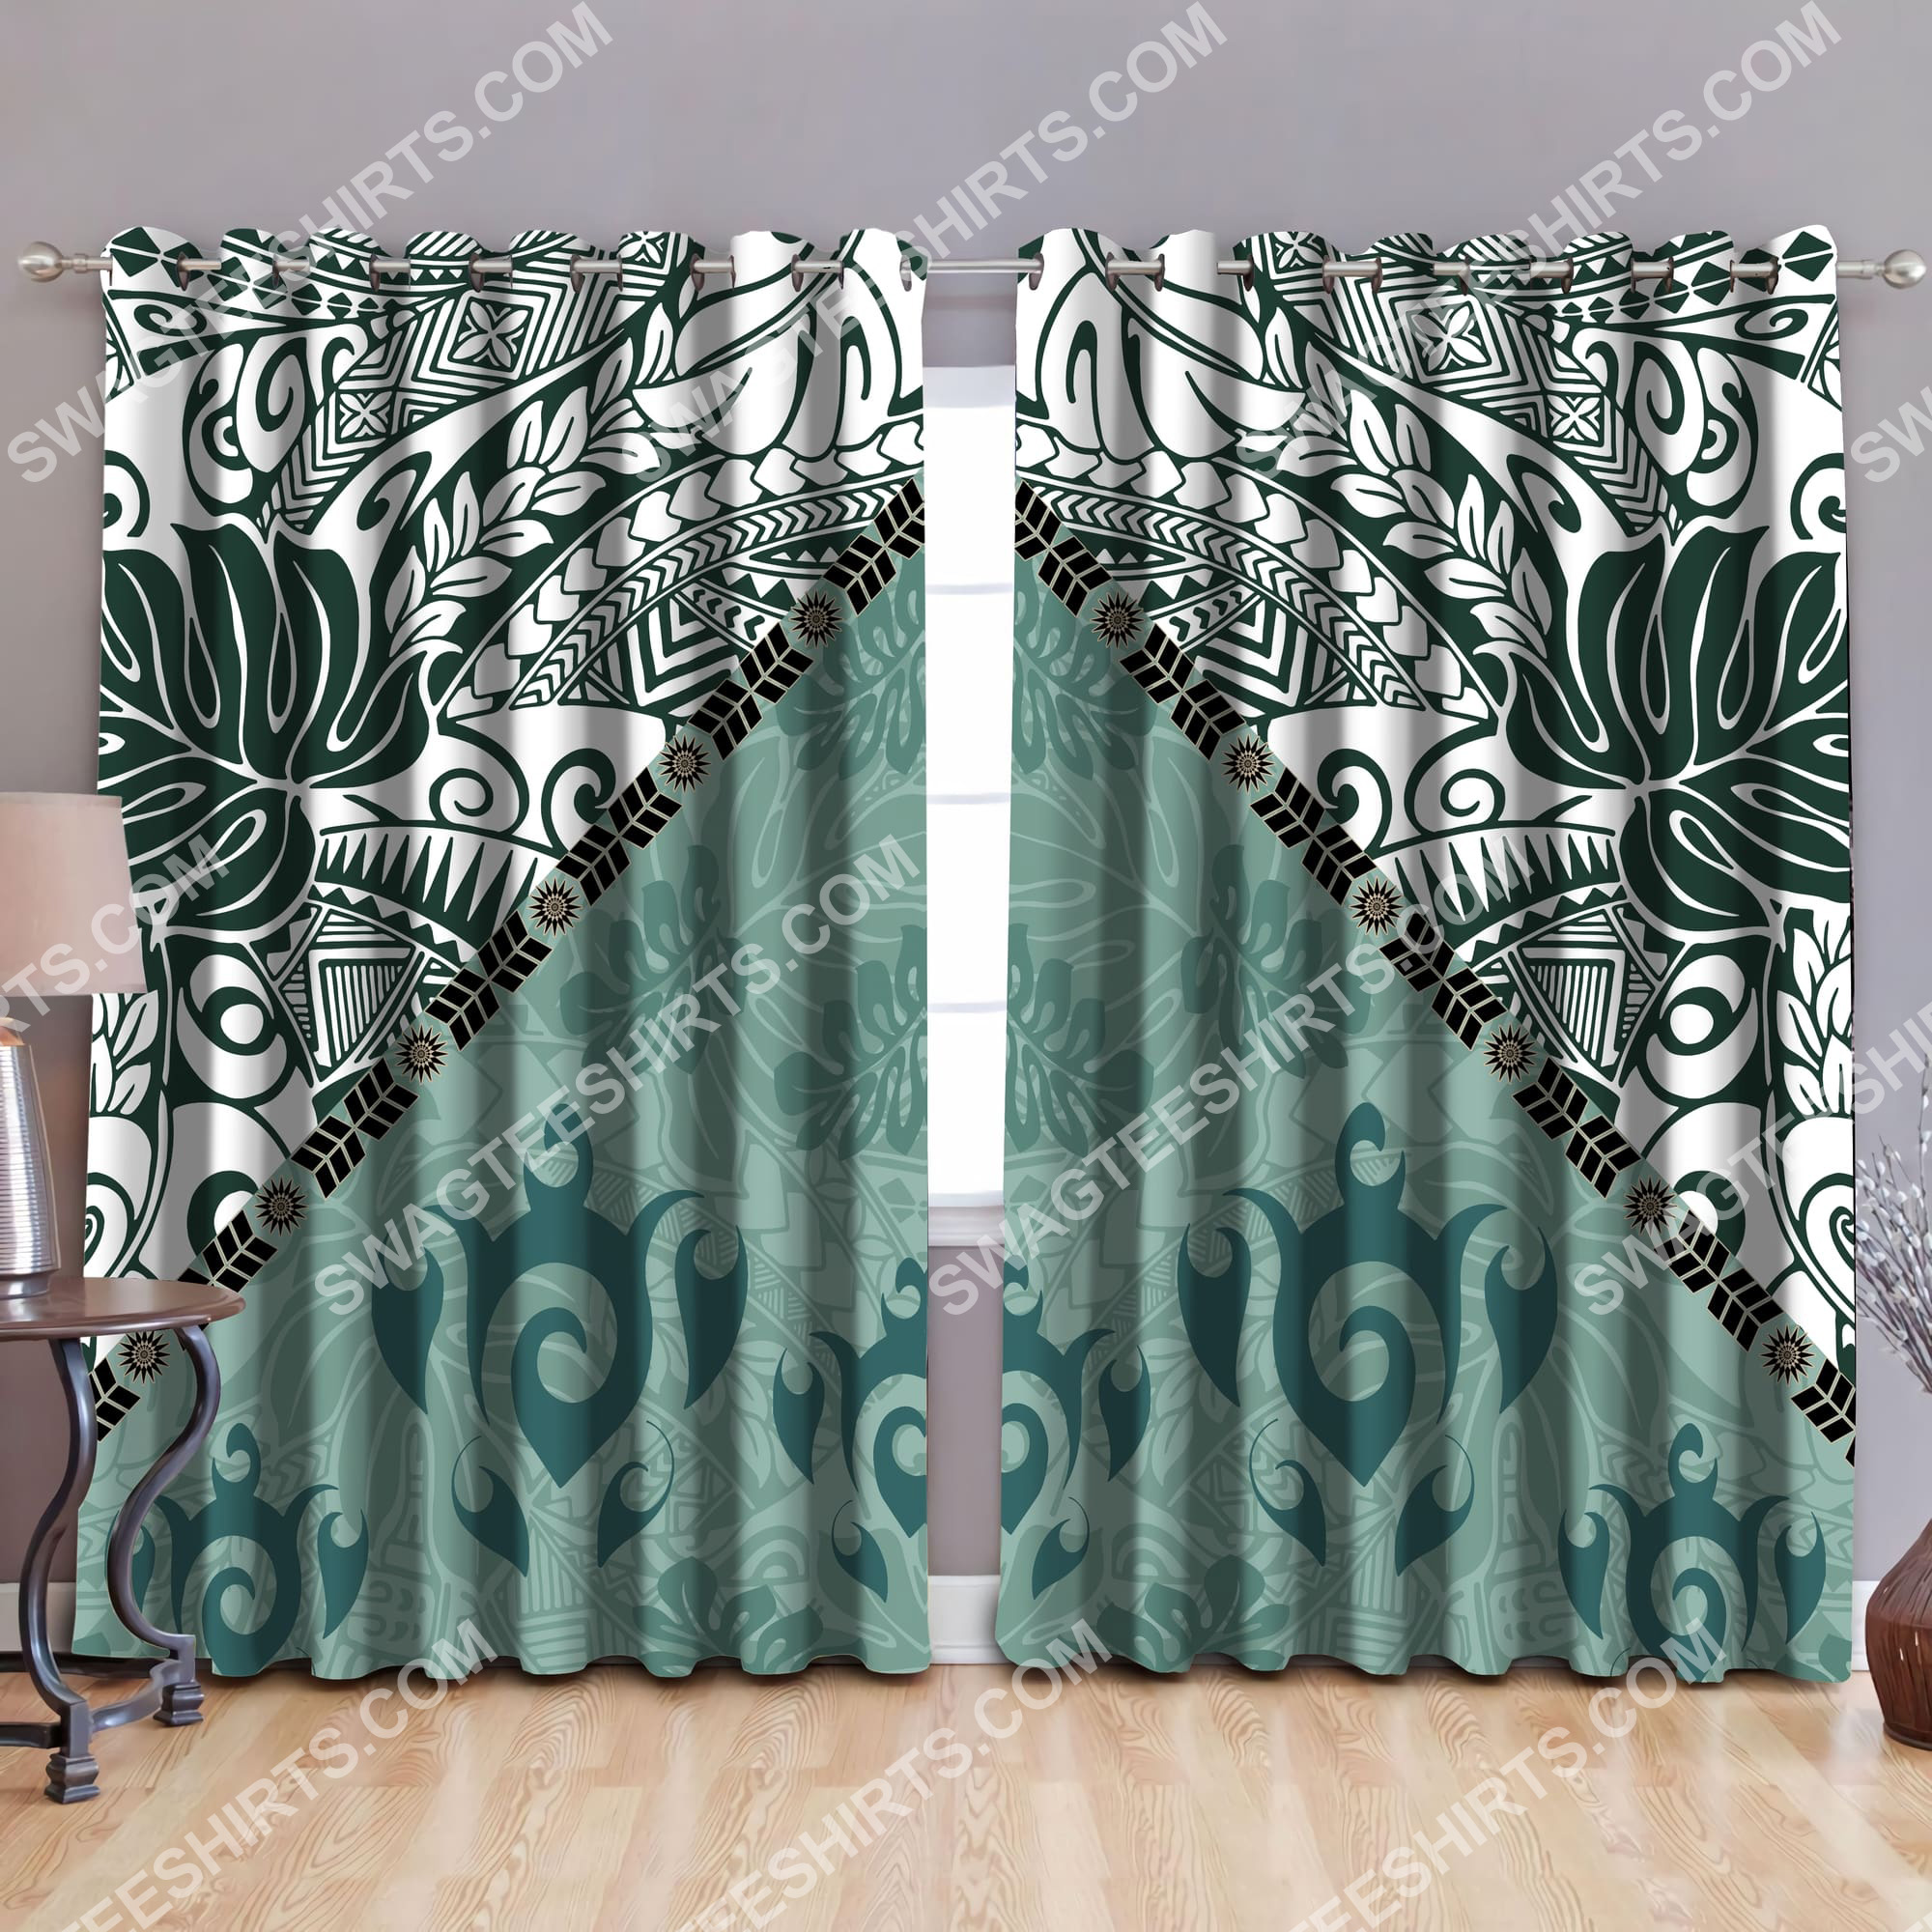 vintage leaves and turtles all over printed window curtains 2(2) - Copy